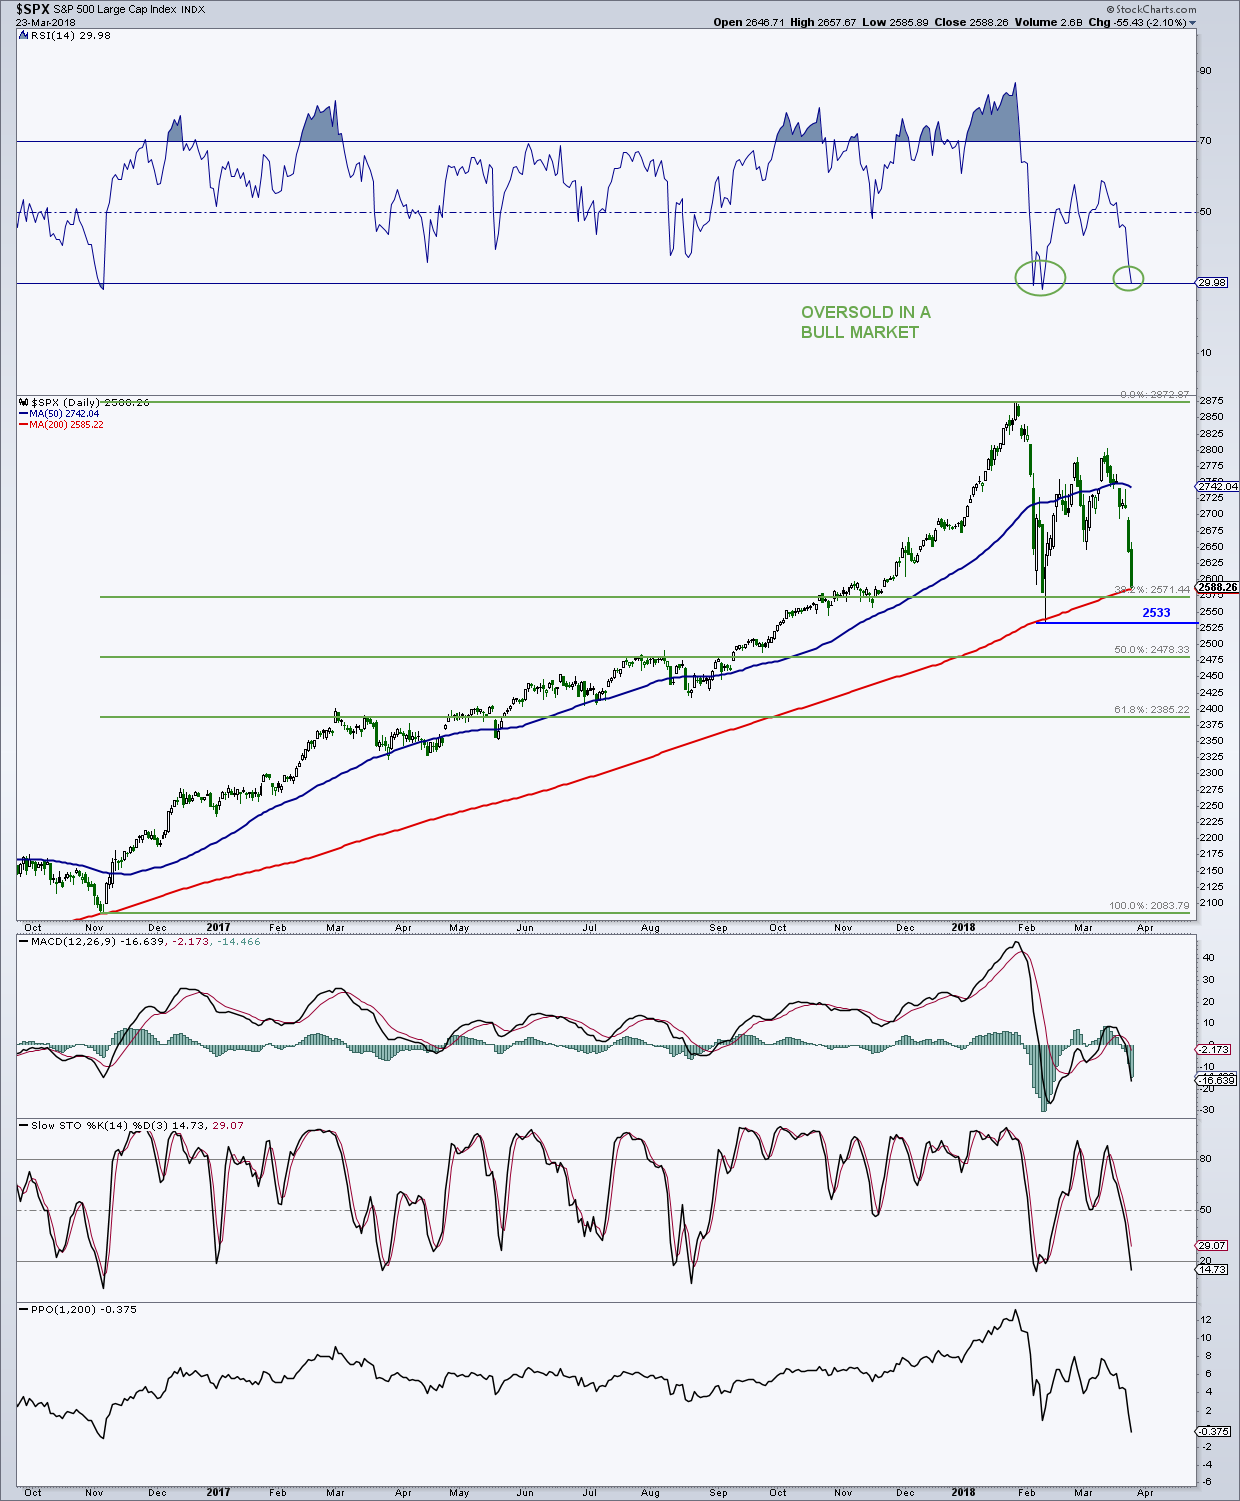 s&p 500 daily stock market chart analysis research bull market correction_march 26